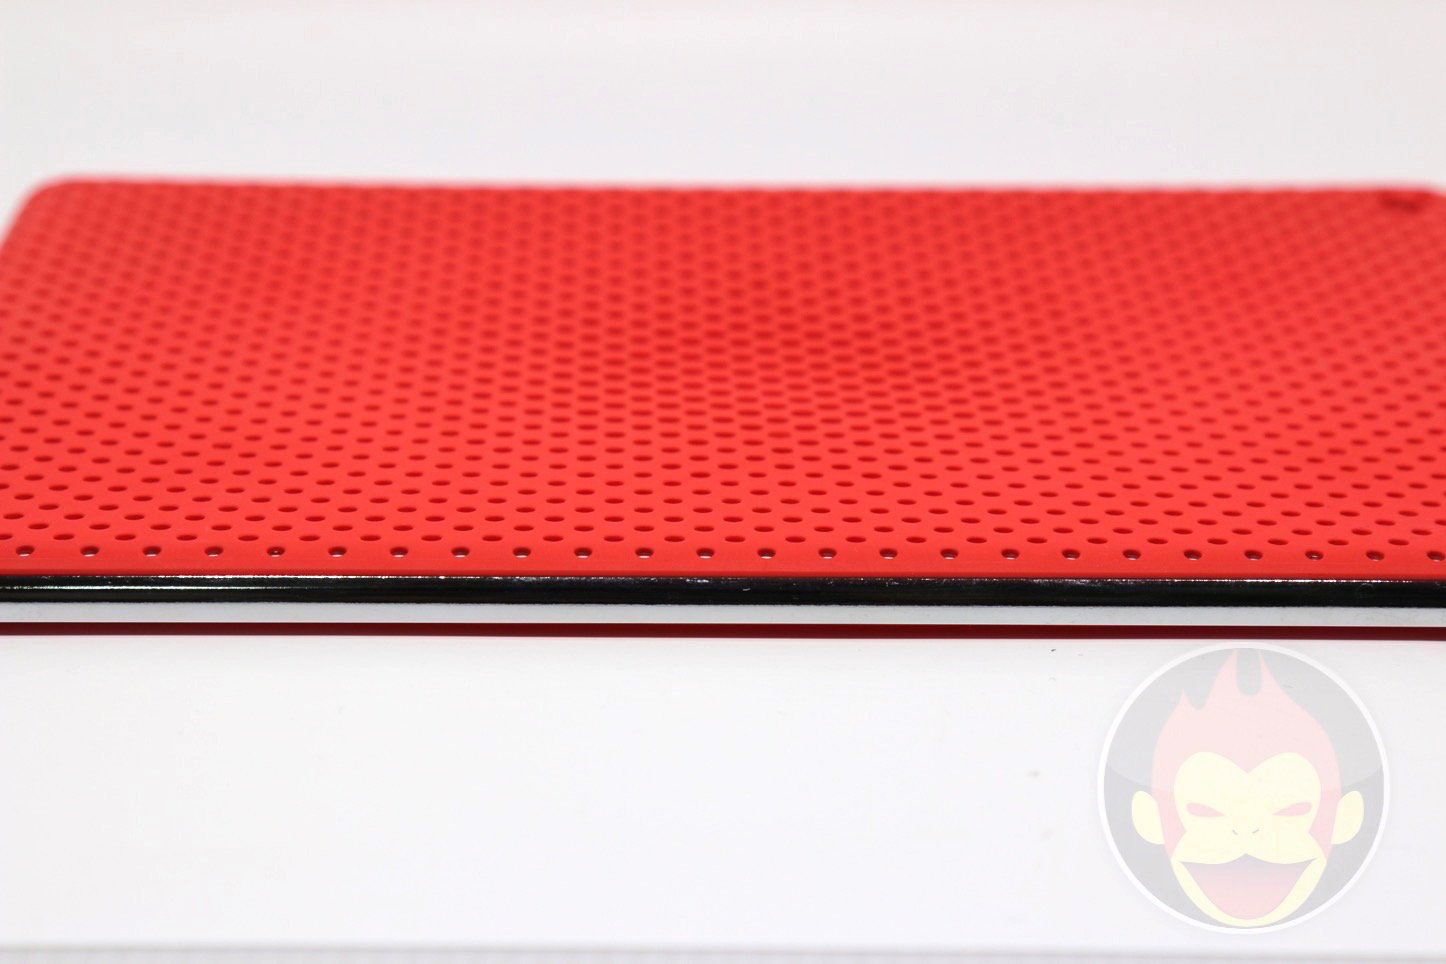 AndMesh-Mesh-Case-for-iPad-Air-2-01.JPG